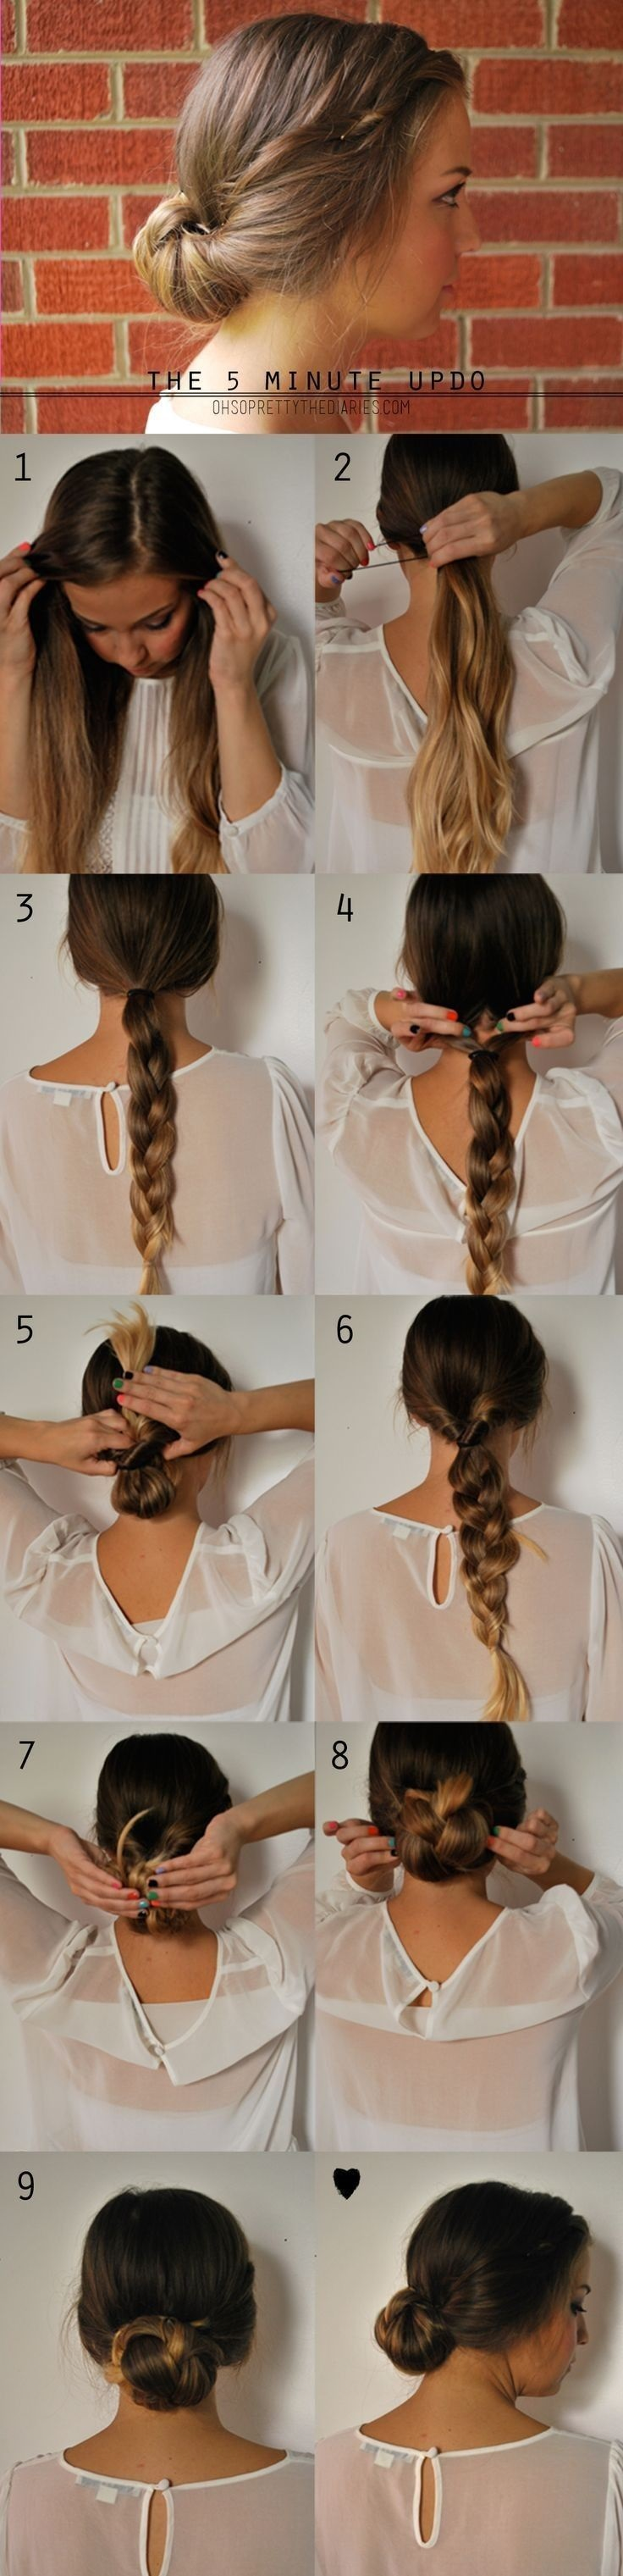 5-minute-up-do